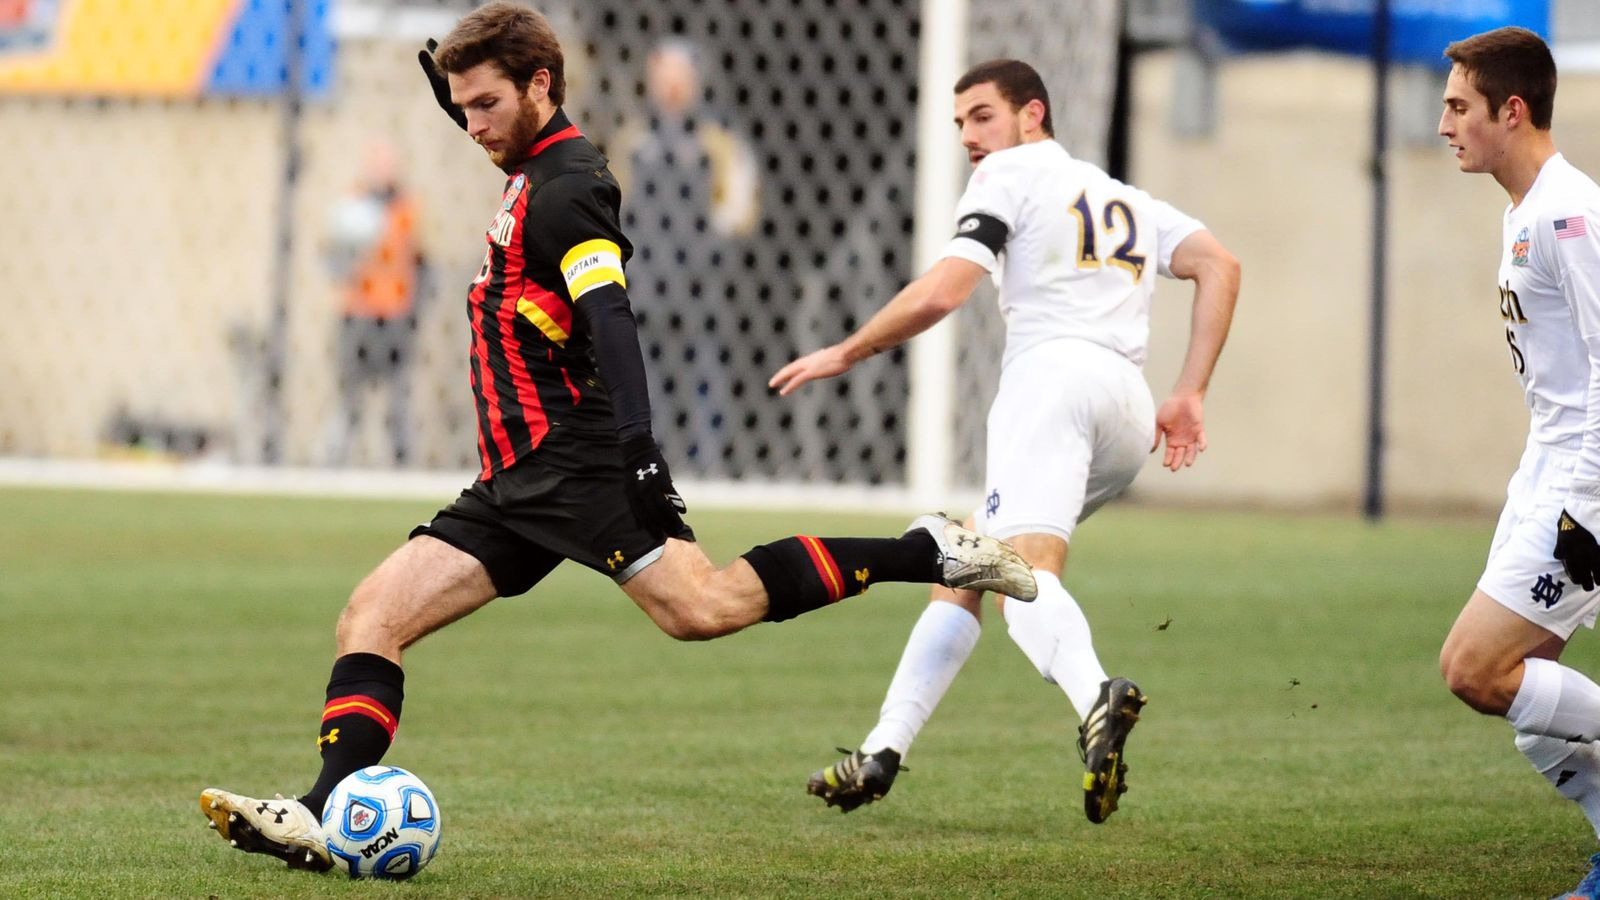 Pin By Md Minhajul Mamun On Soccer Players: Maryland Men's Soccer: Terps And UMBC Tie 0-0